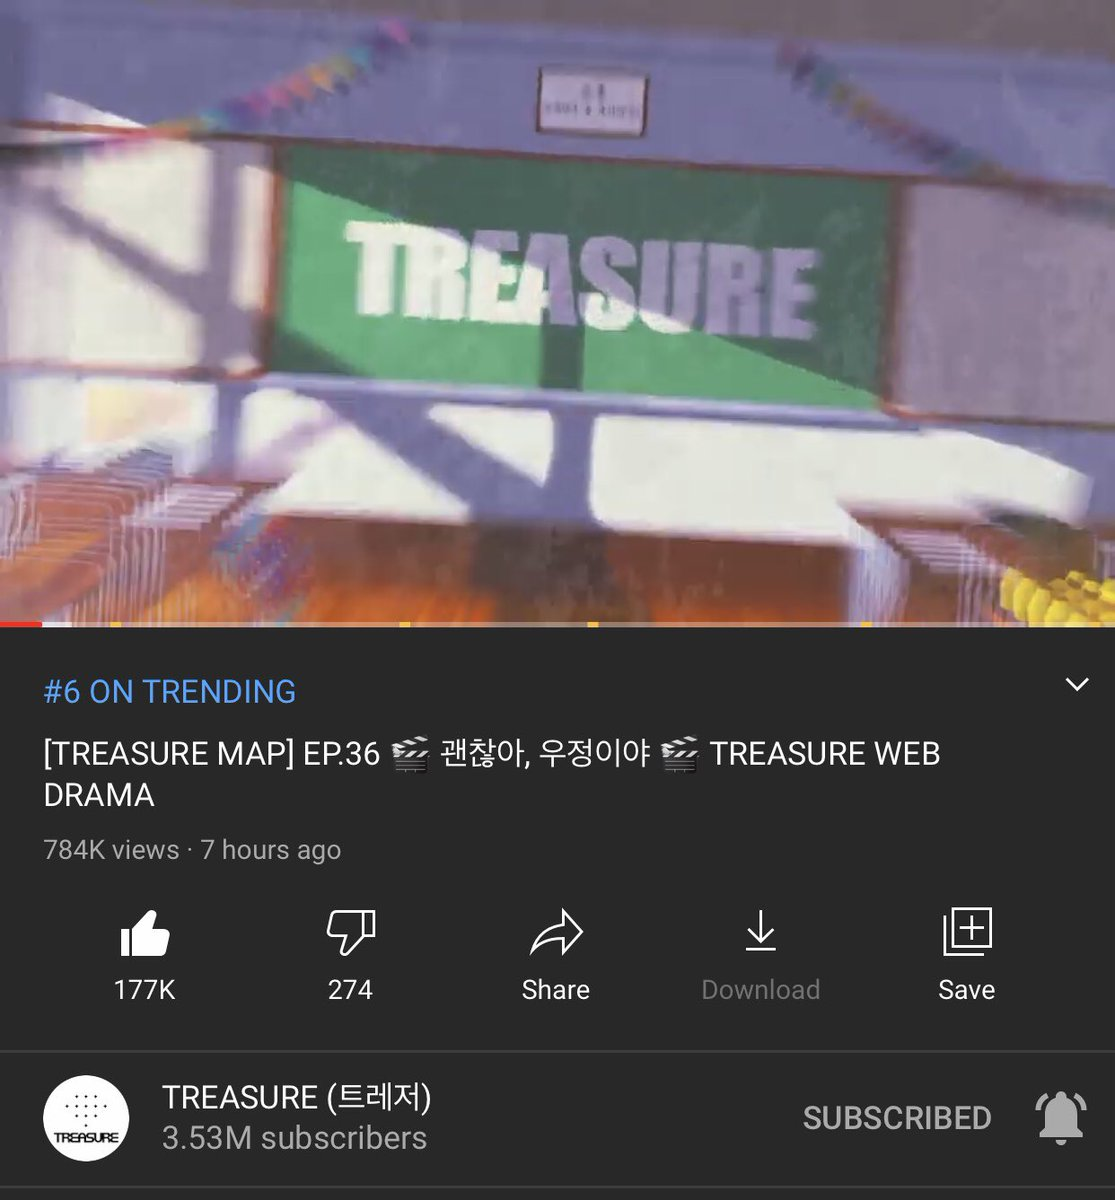 ITS OKAY ITS FRIENDSHIP  [TREASURE MAP] EP.36 TREASURE WEB DRAMA  #TREASURE  #TREASURE_WEBDRAMA #ITSOKAYITSFRIENDSHIP #TRENDING #TREASUREMAP